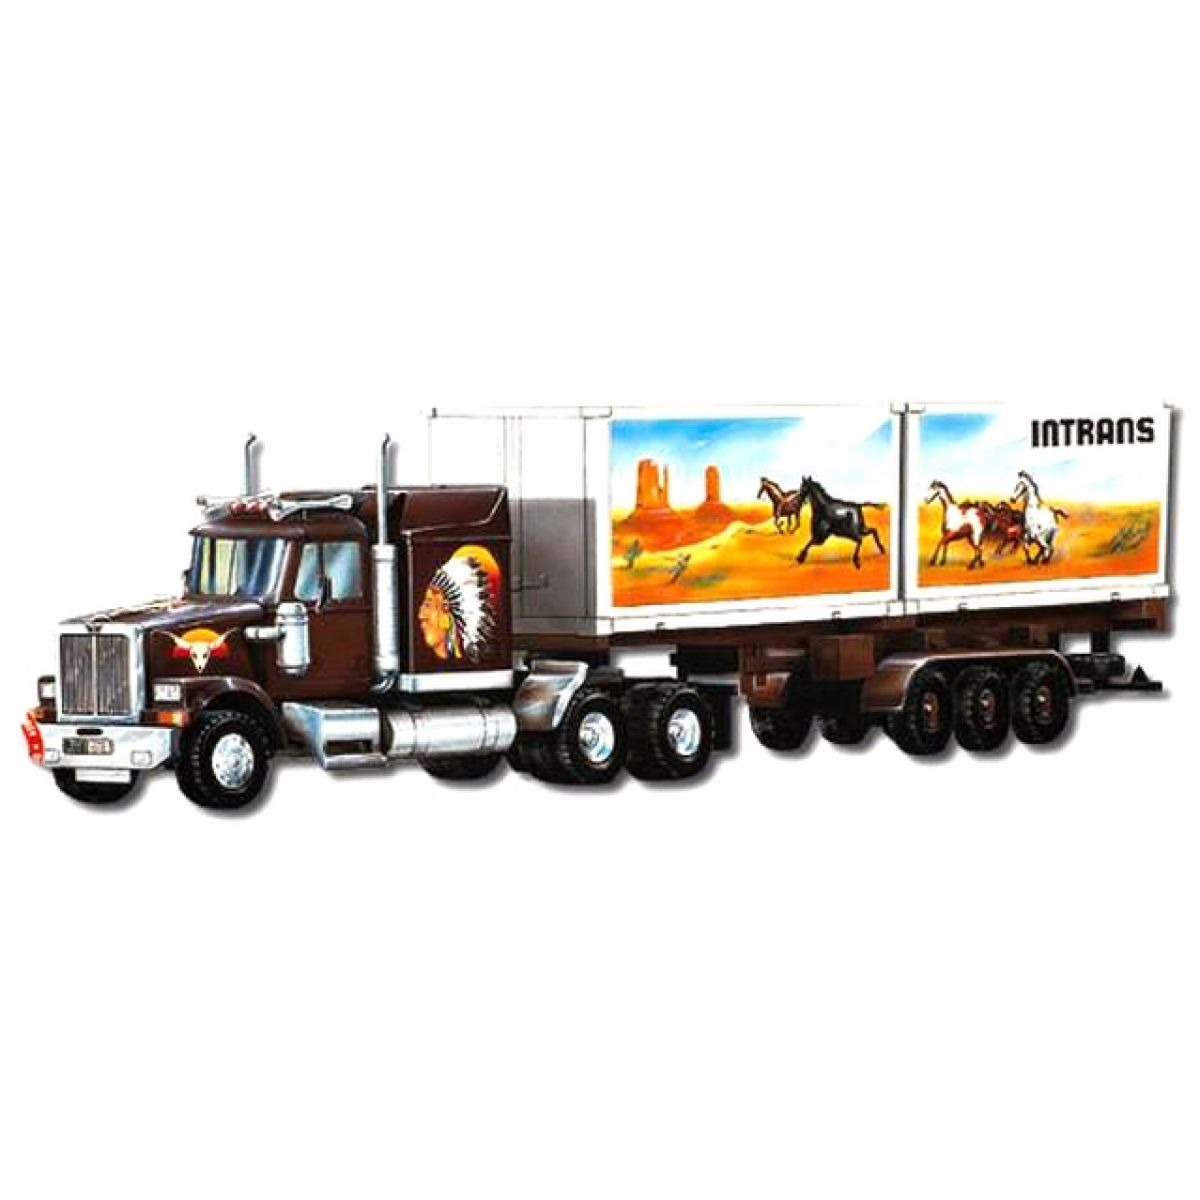 Monti System 25 Western Star Intrans Container